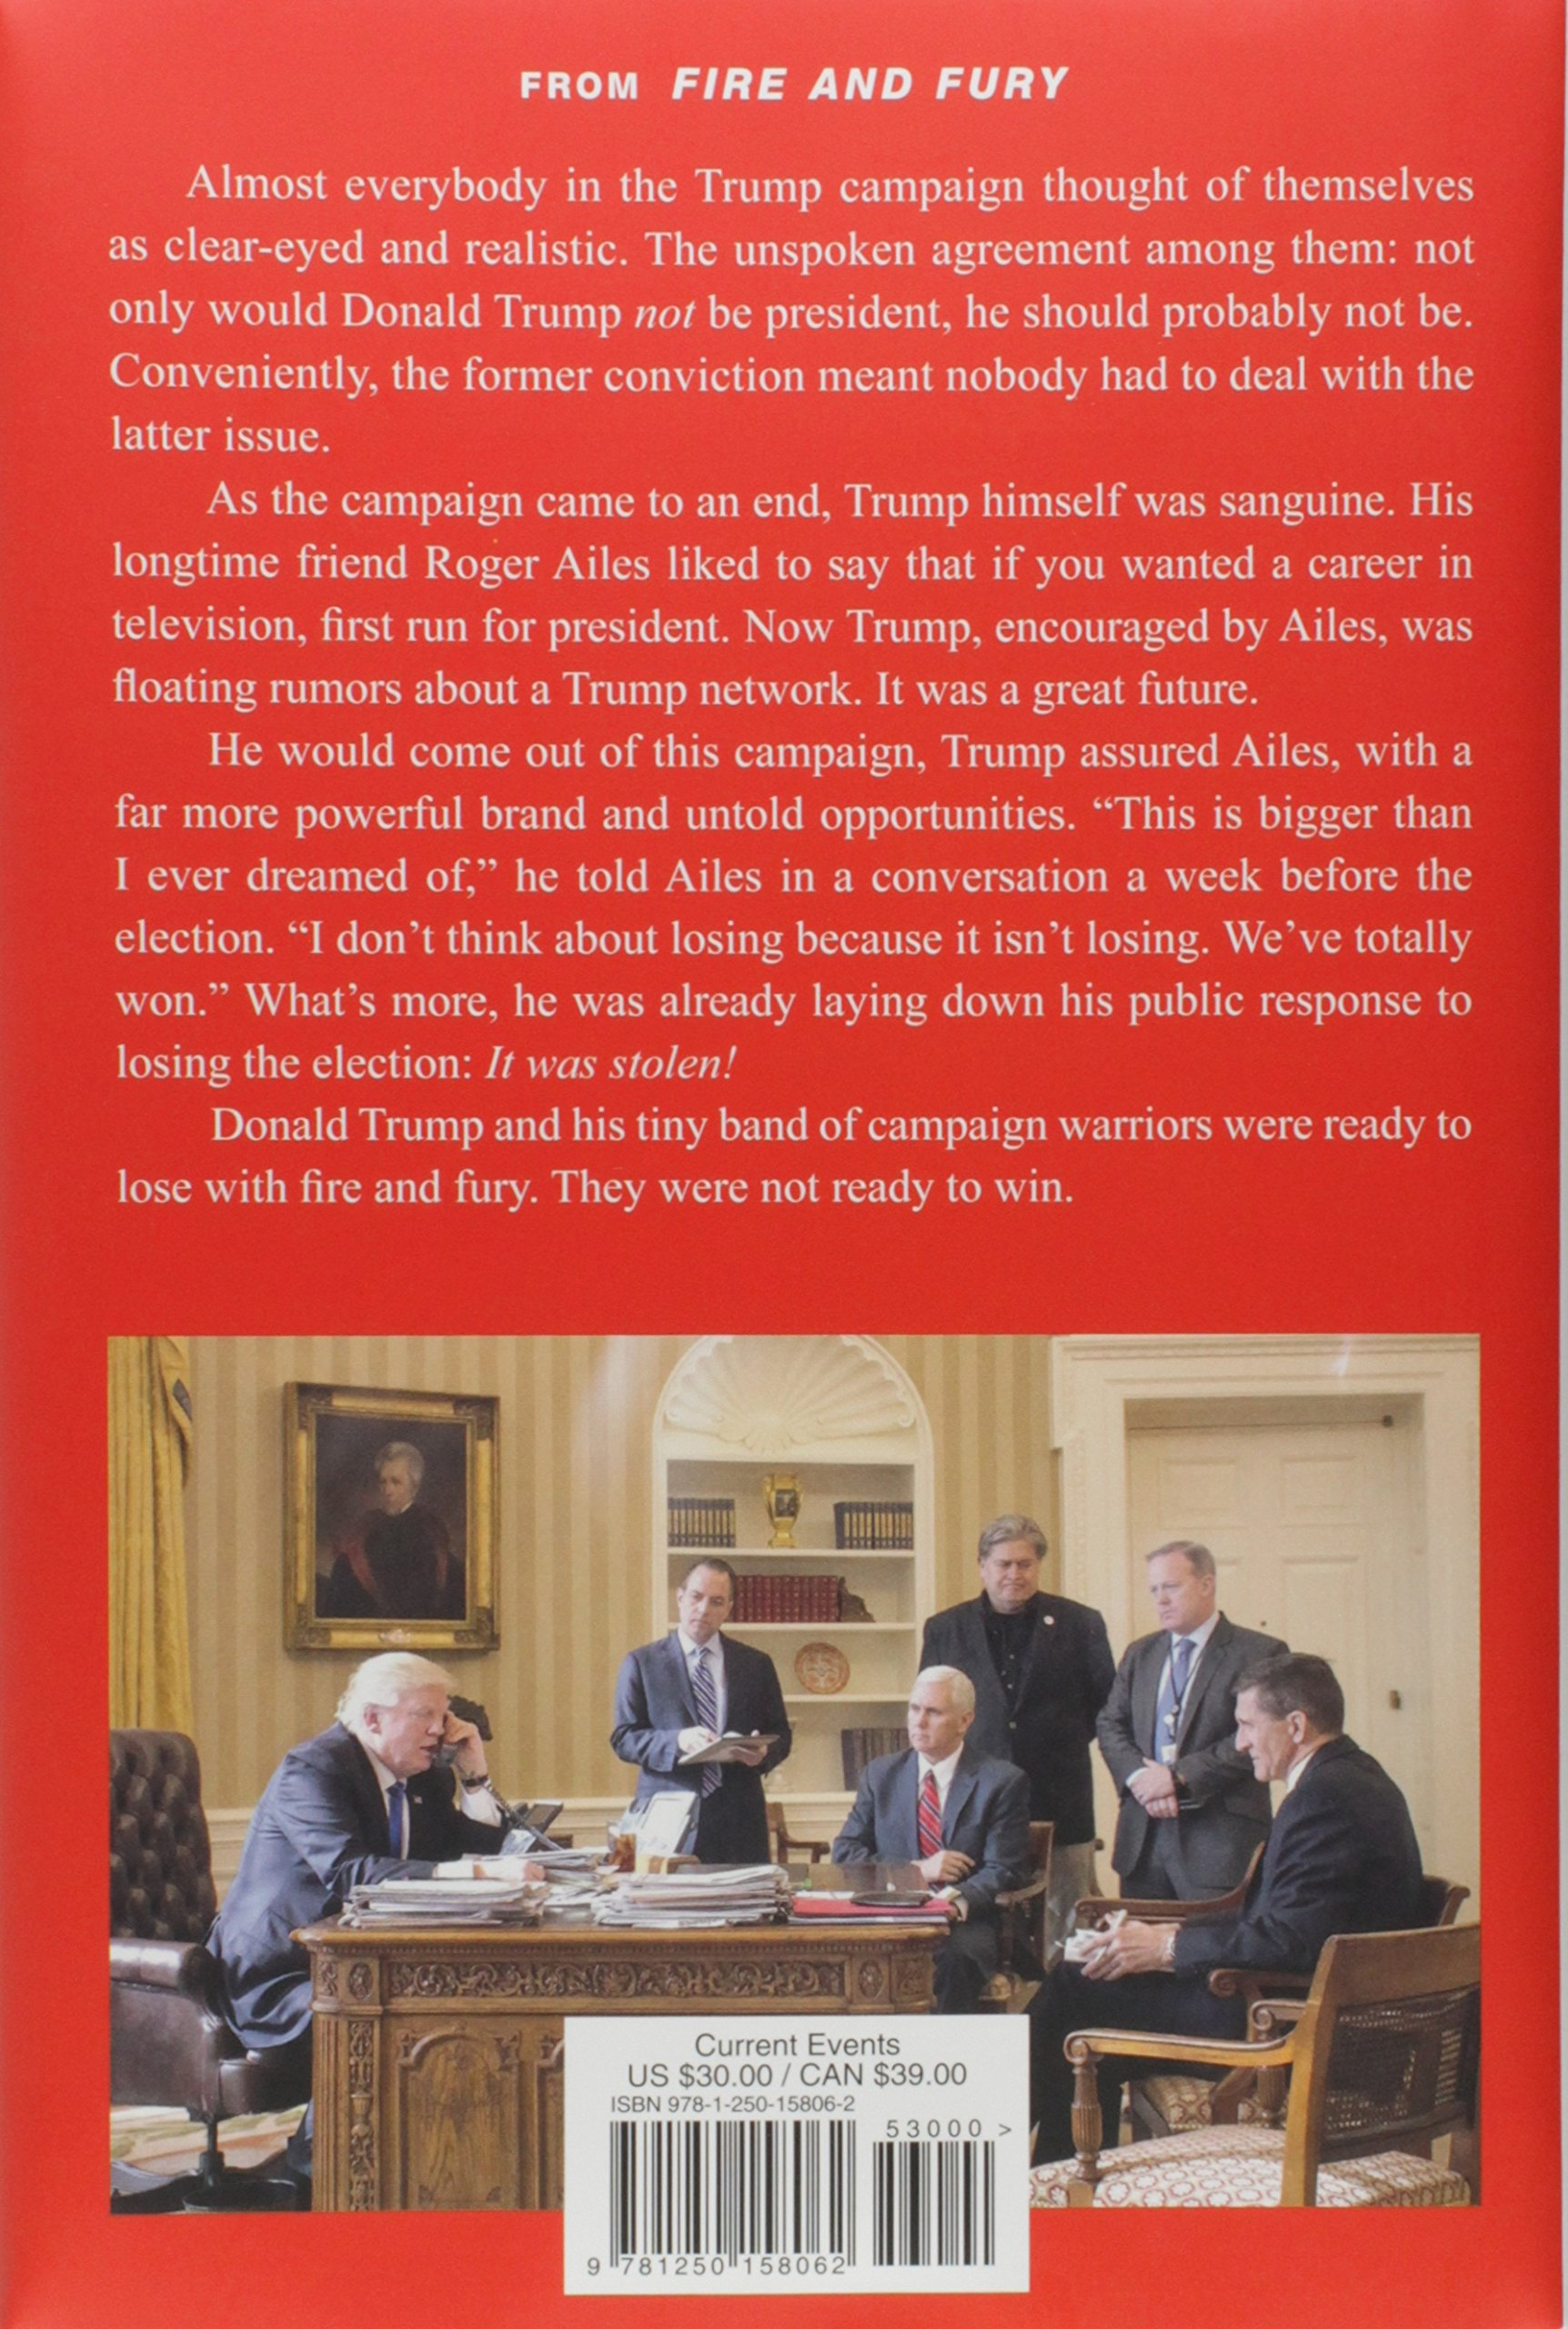 Fire and Fury: Inside the Trump White House: Michael Wolff: 9781250158062:  Amazon.com: Books